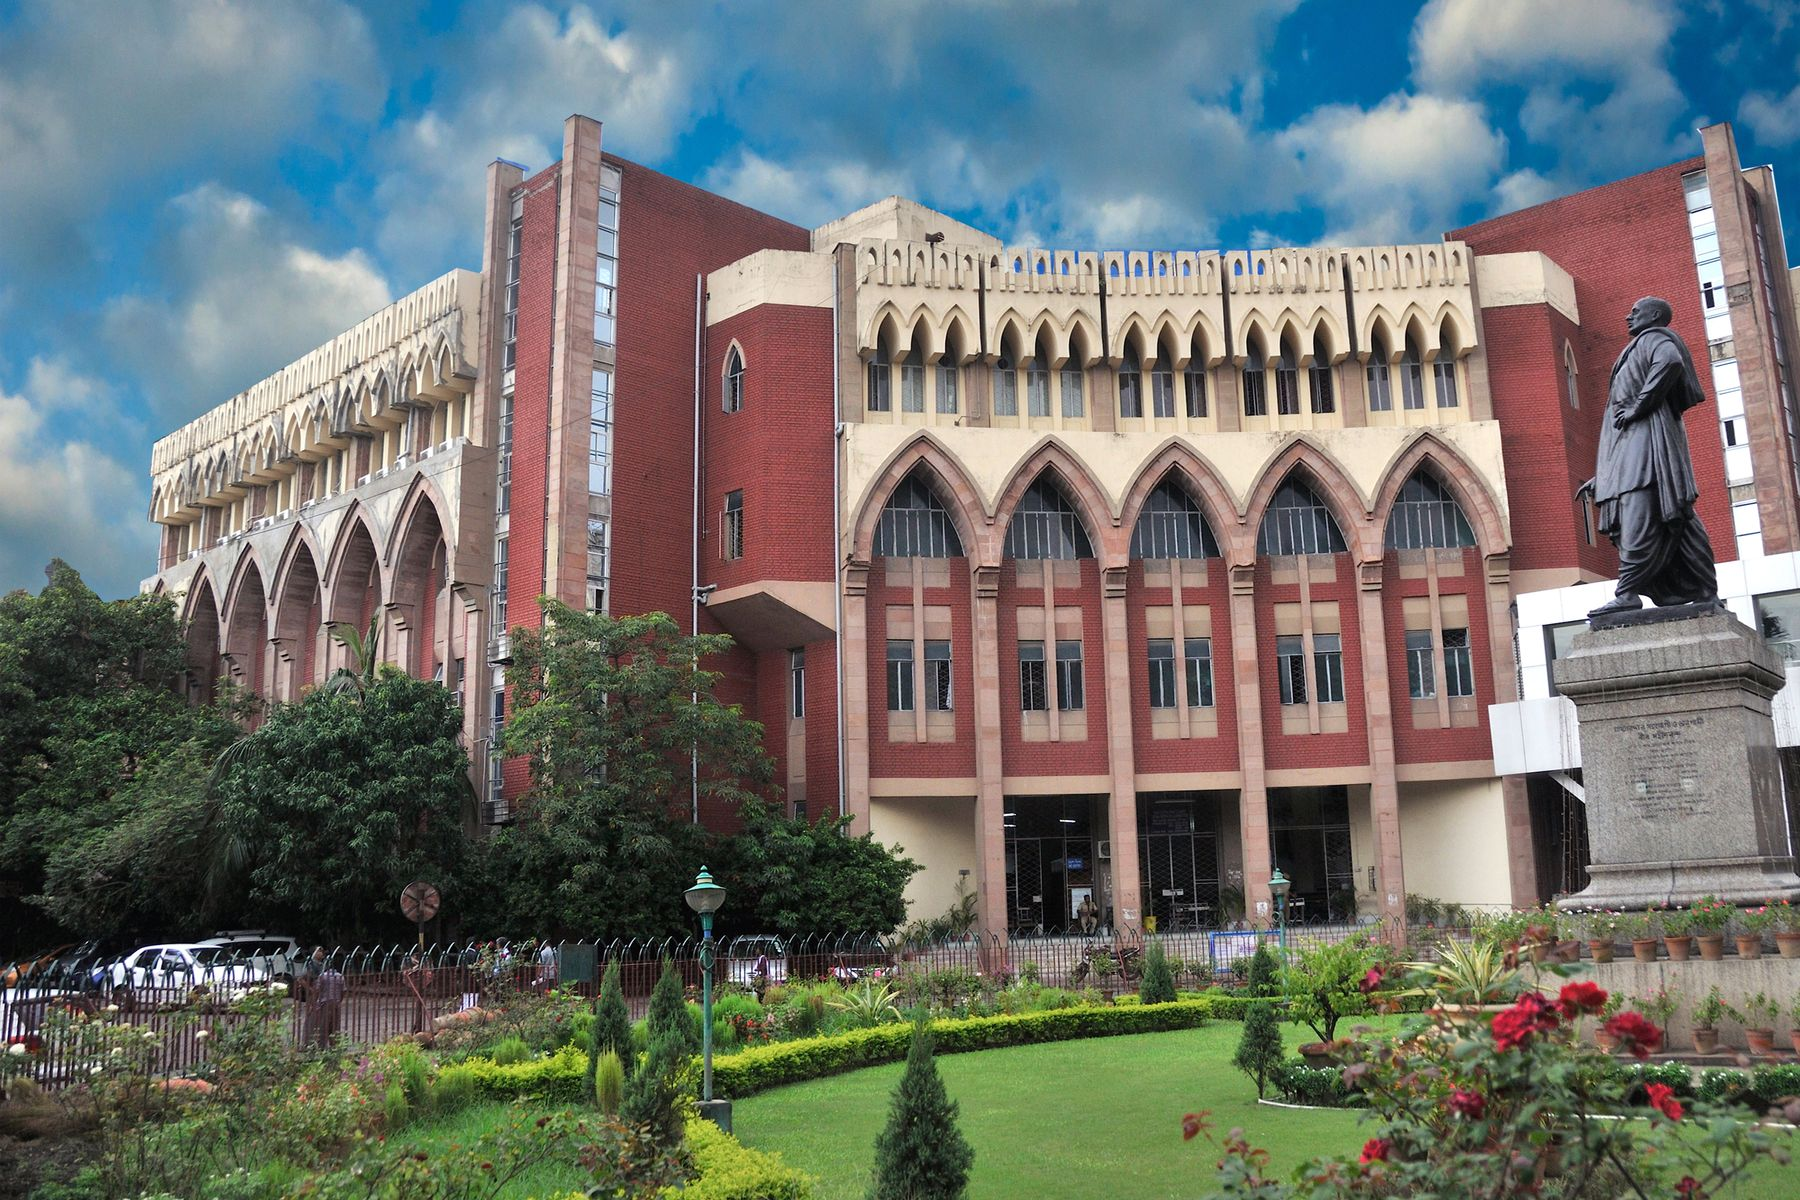 Calcutta High Court Centinary Building